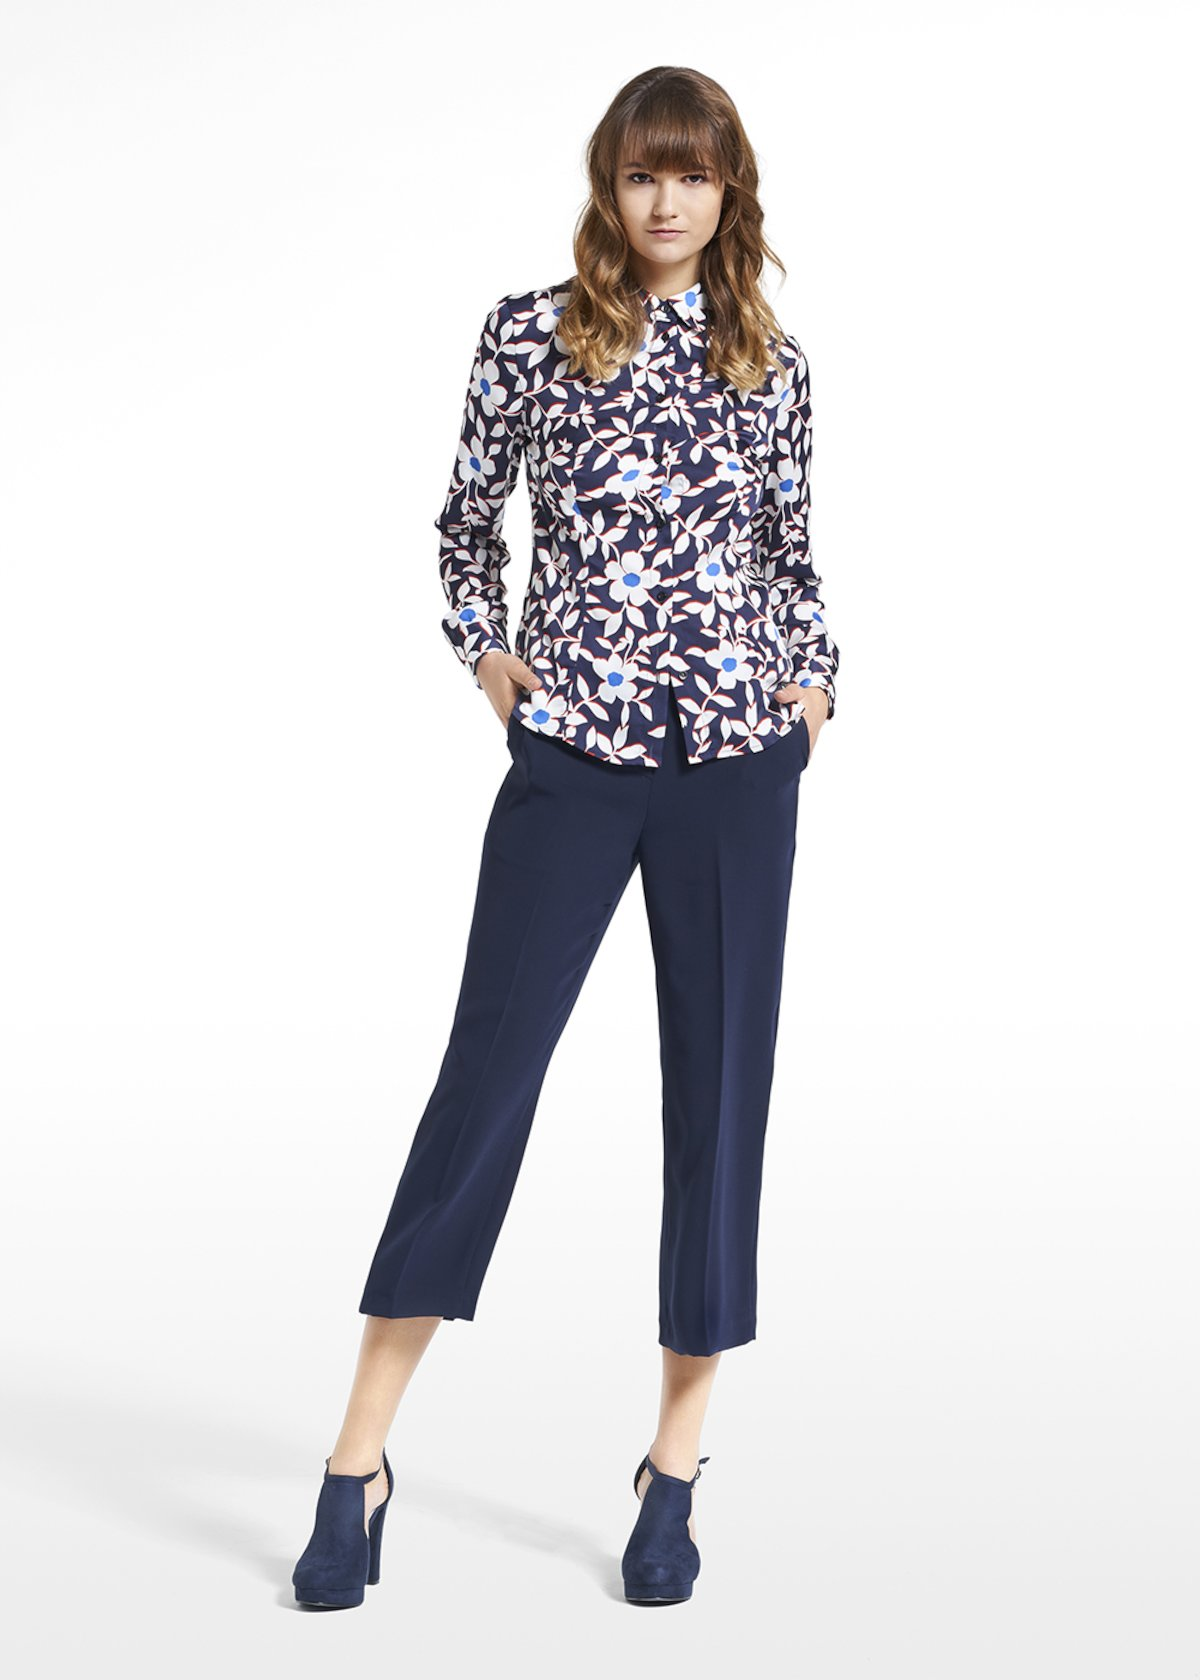 Patterned blue jasmine blouse Camila - Blue / White Fantasia - Woman